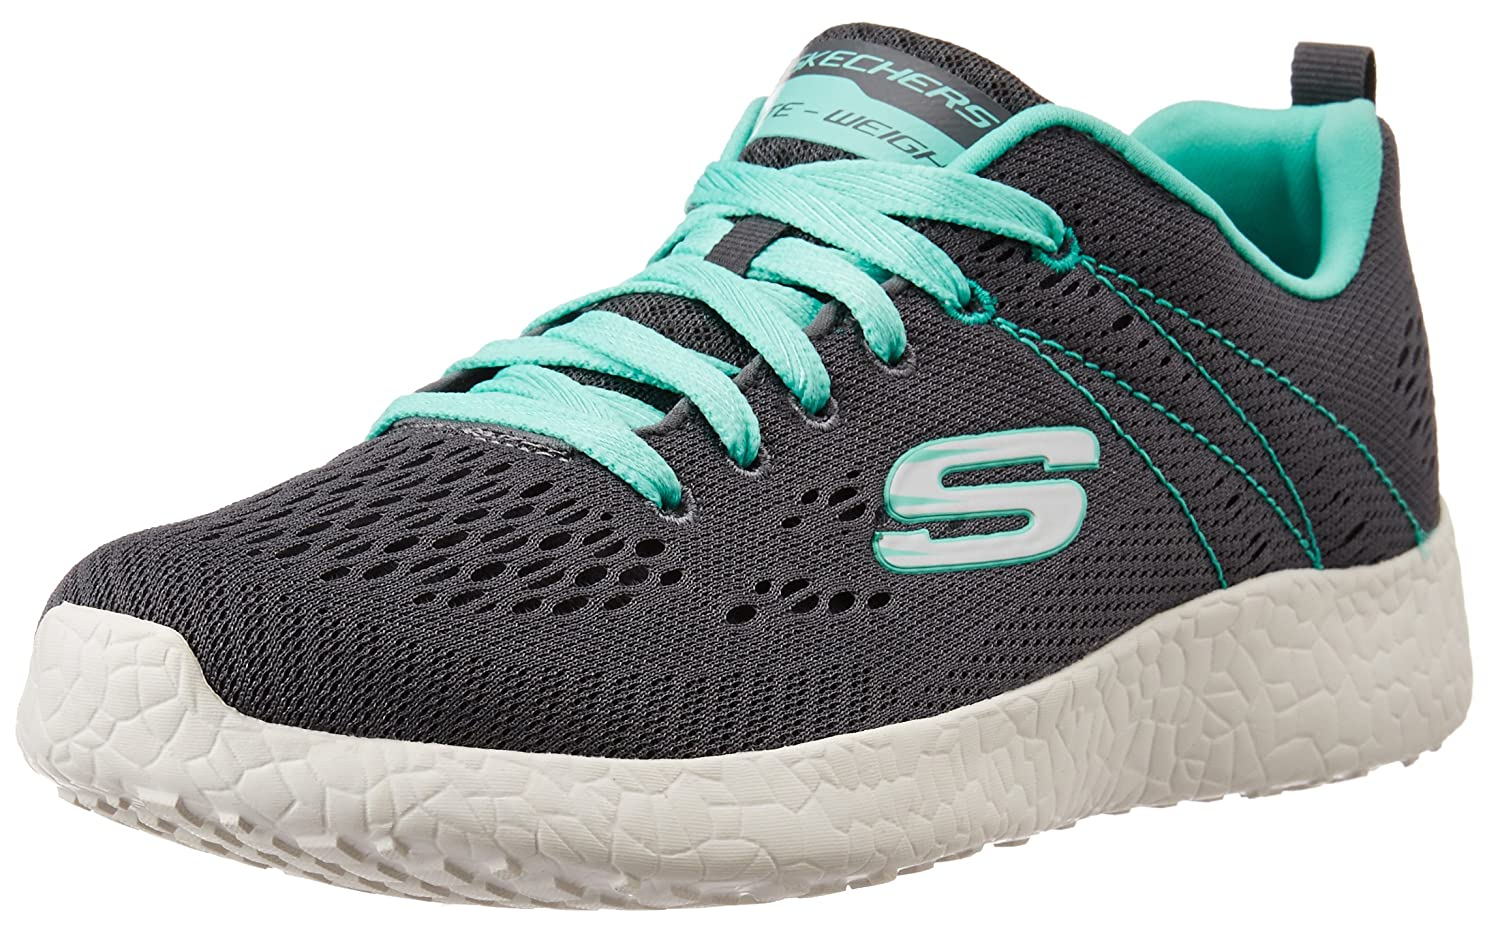 Skechers Sport Women's Burst Fashion Sneaker B00ZI9CL7S 5.5 B(M) US|Charcoal/Aqua